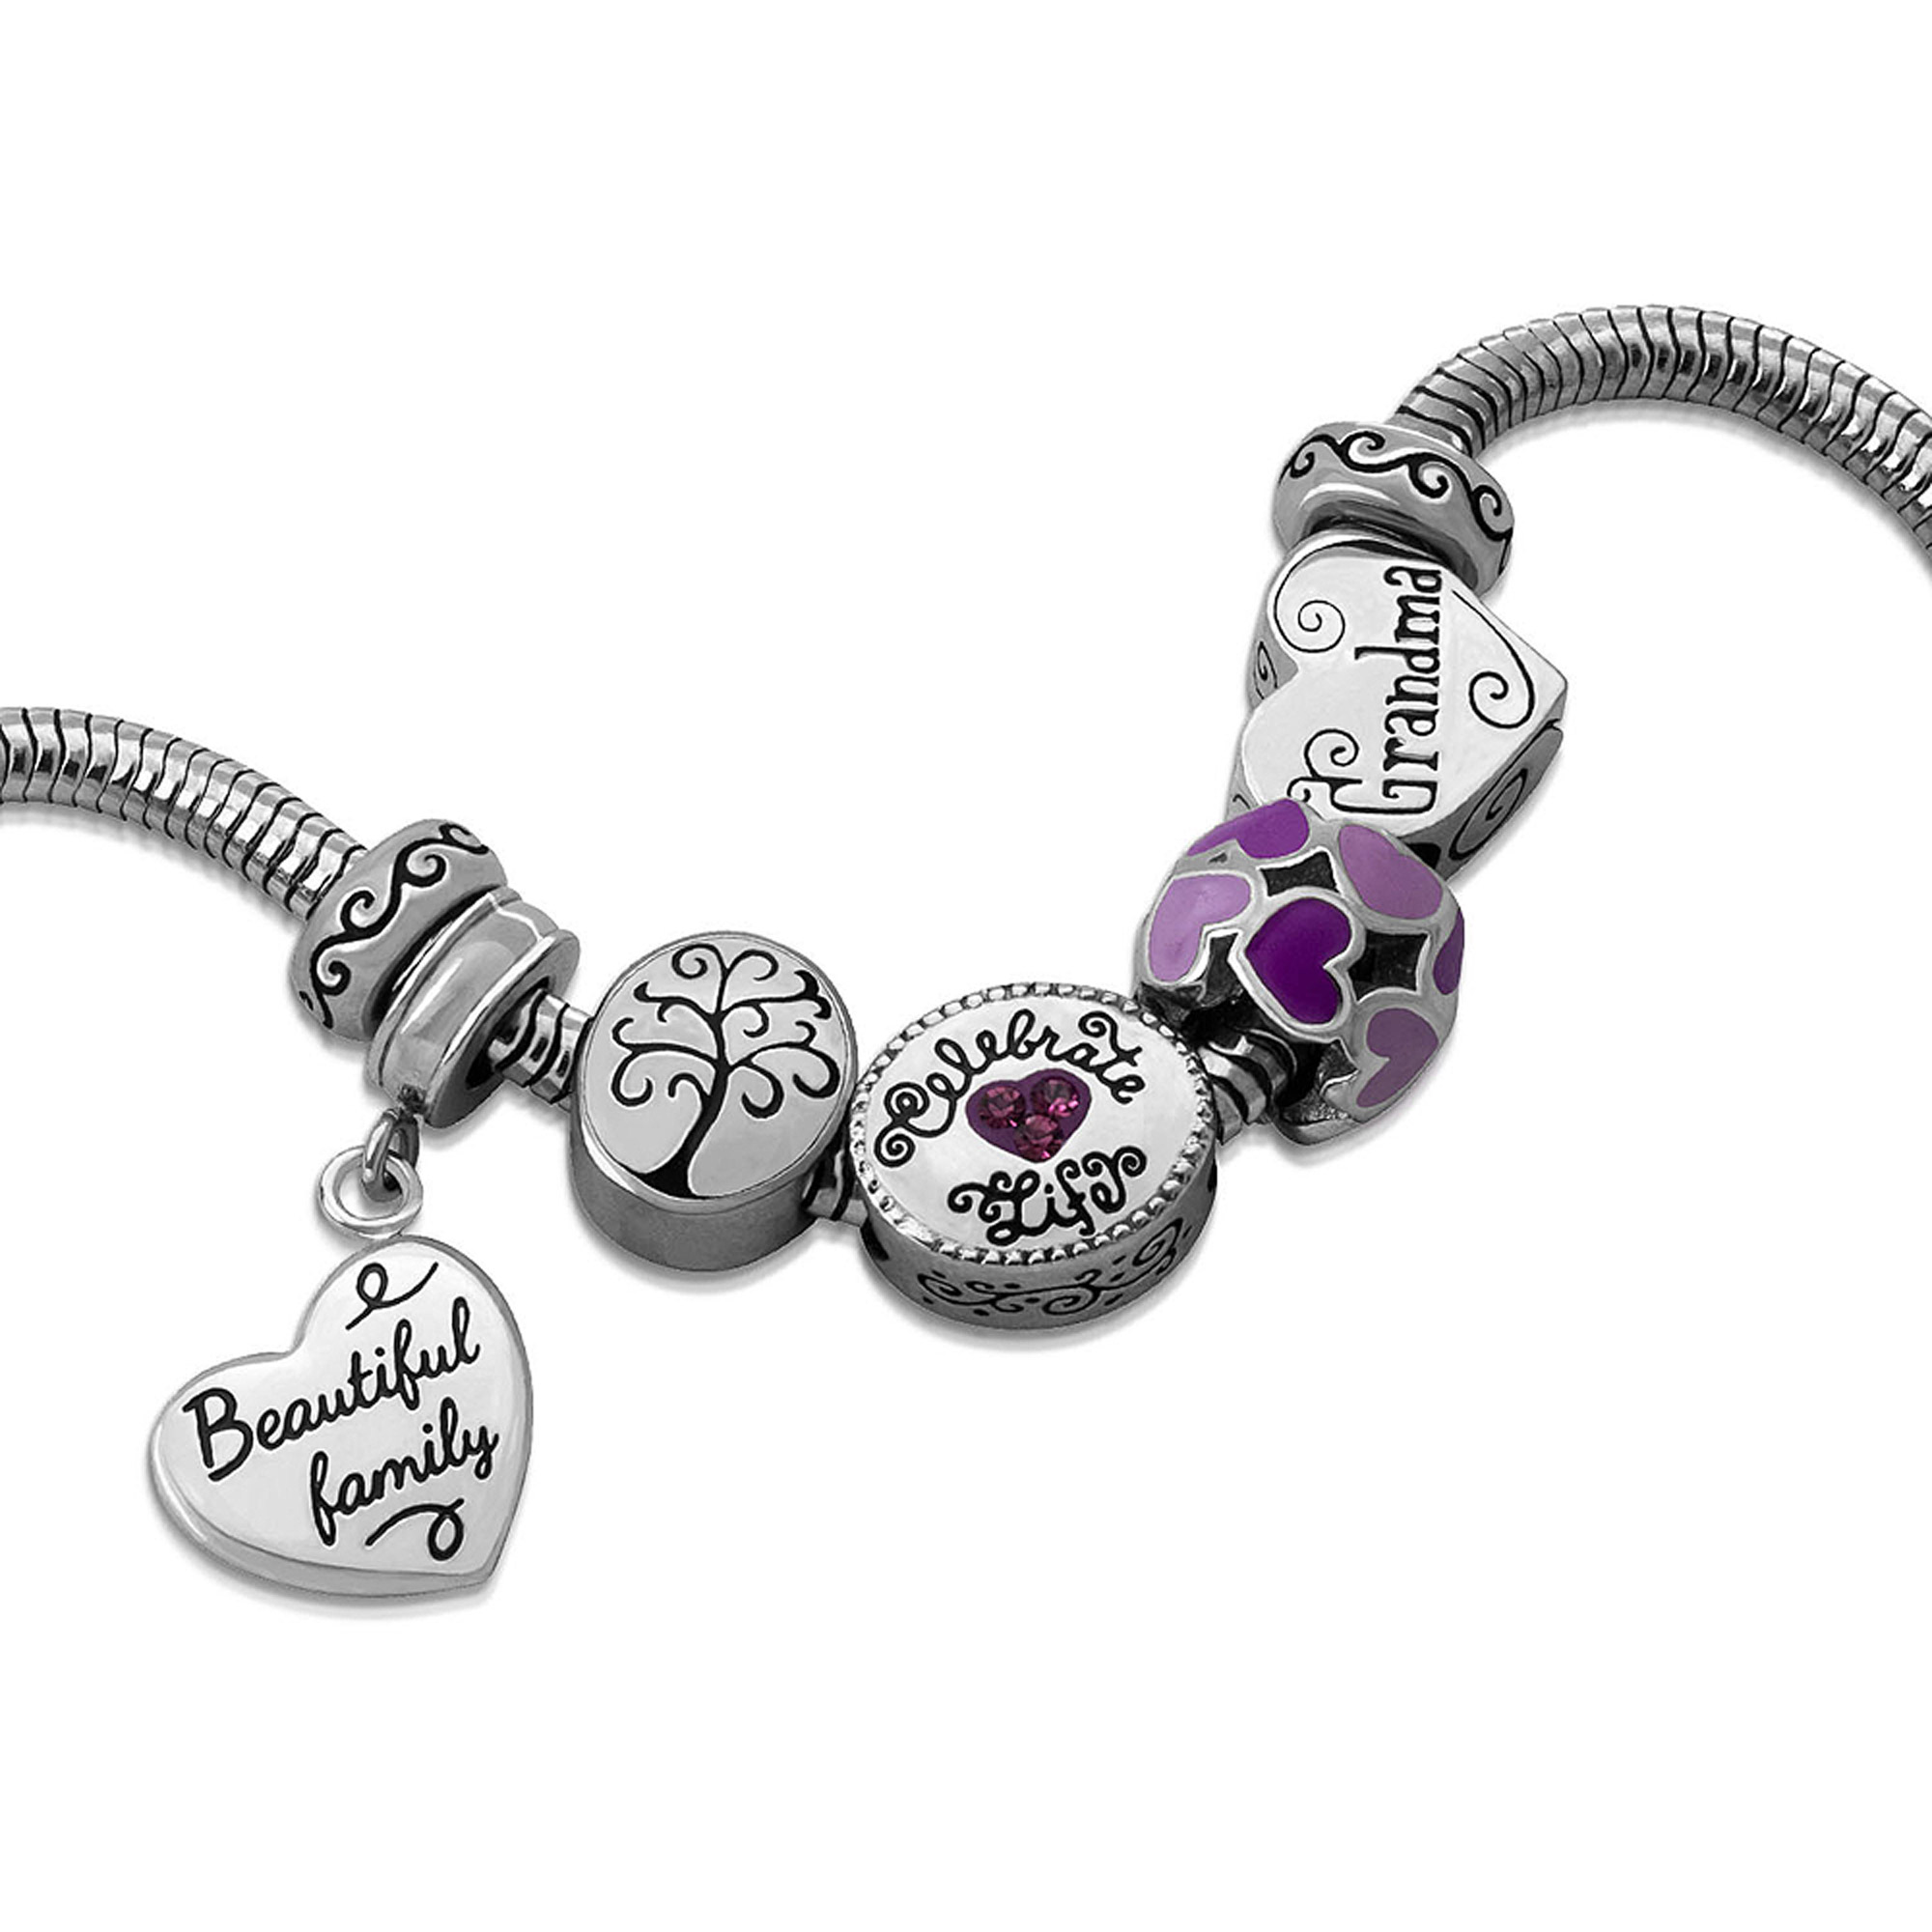 Connections from Hallmark Stainless Steel Limited Edition Grandma Charm Bracelet Set